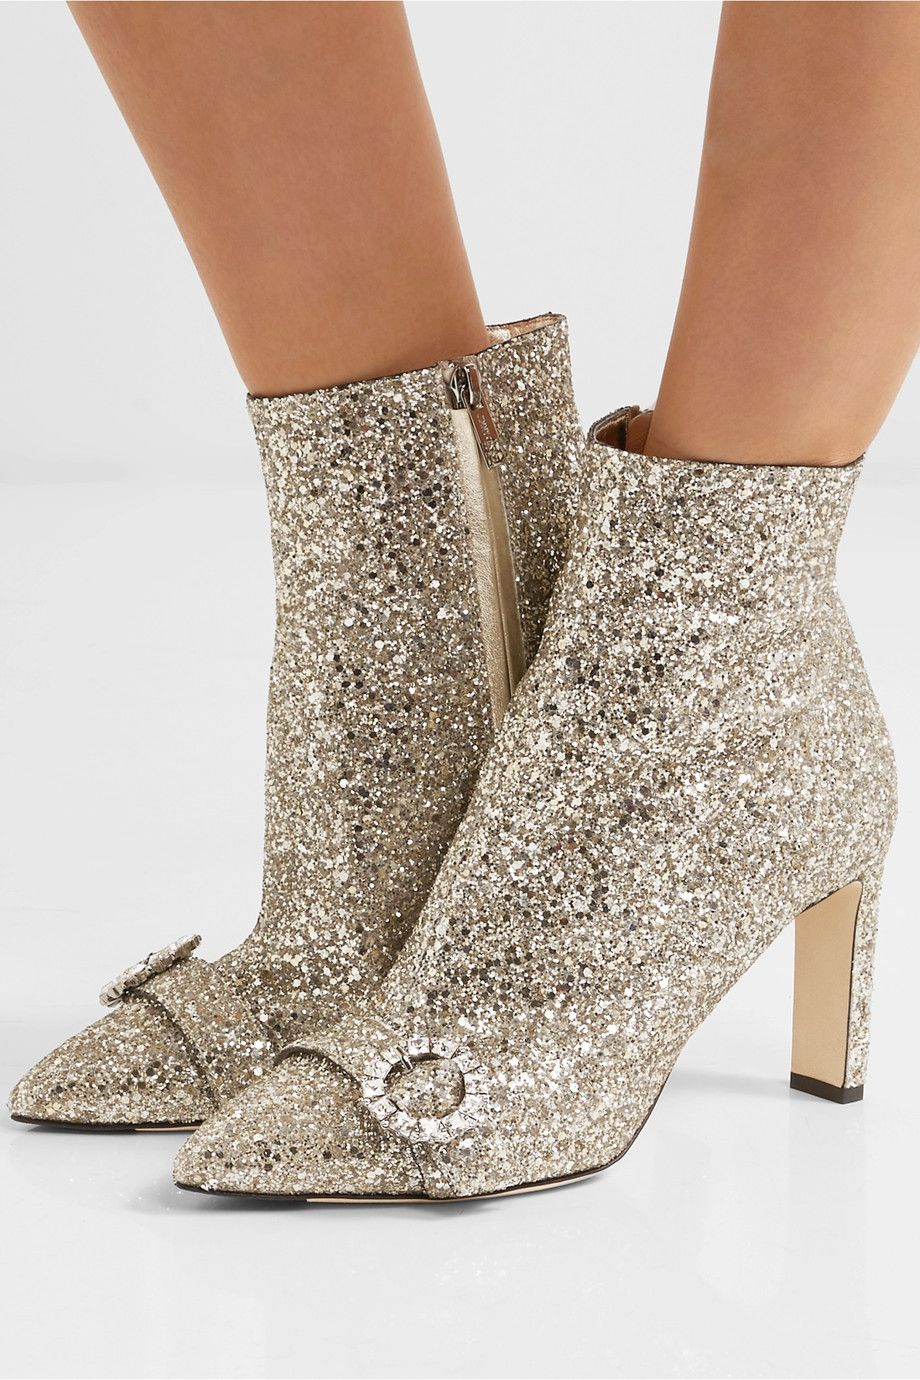 Jimmy Choo Hanover 85 boots 2015 sale online discount buy clearance pre order deals cheap online Vu35hZa